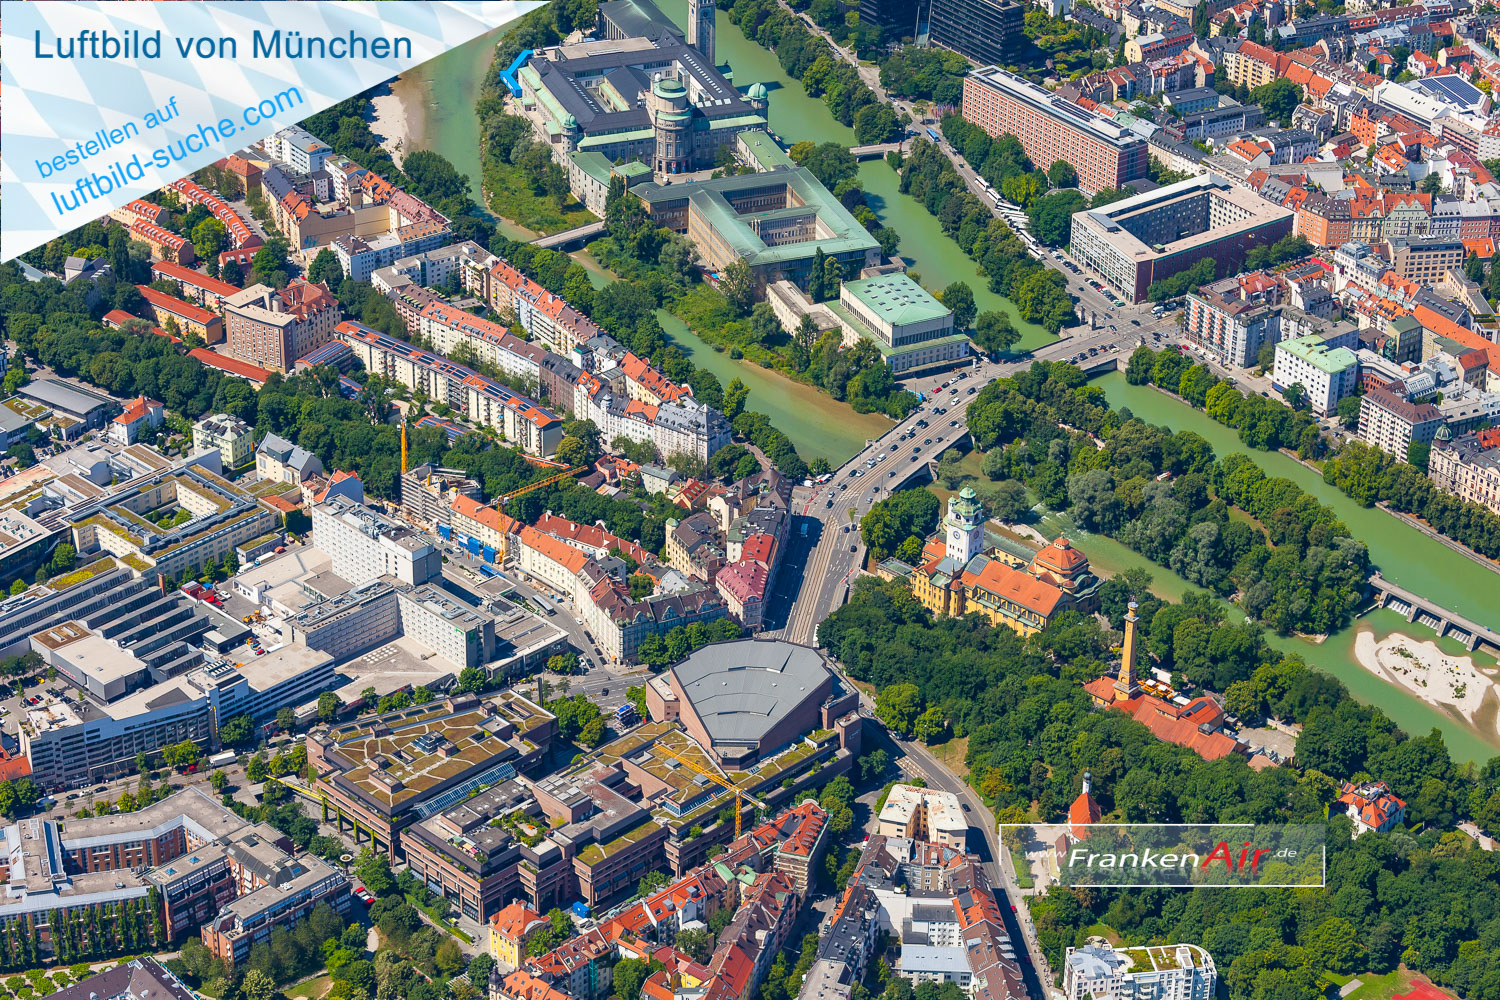 Museumsinsel-muenchen-17-2386